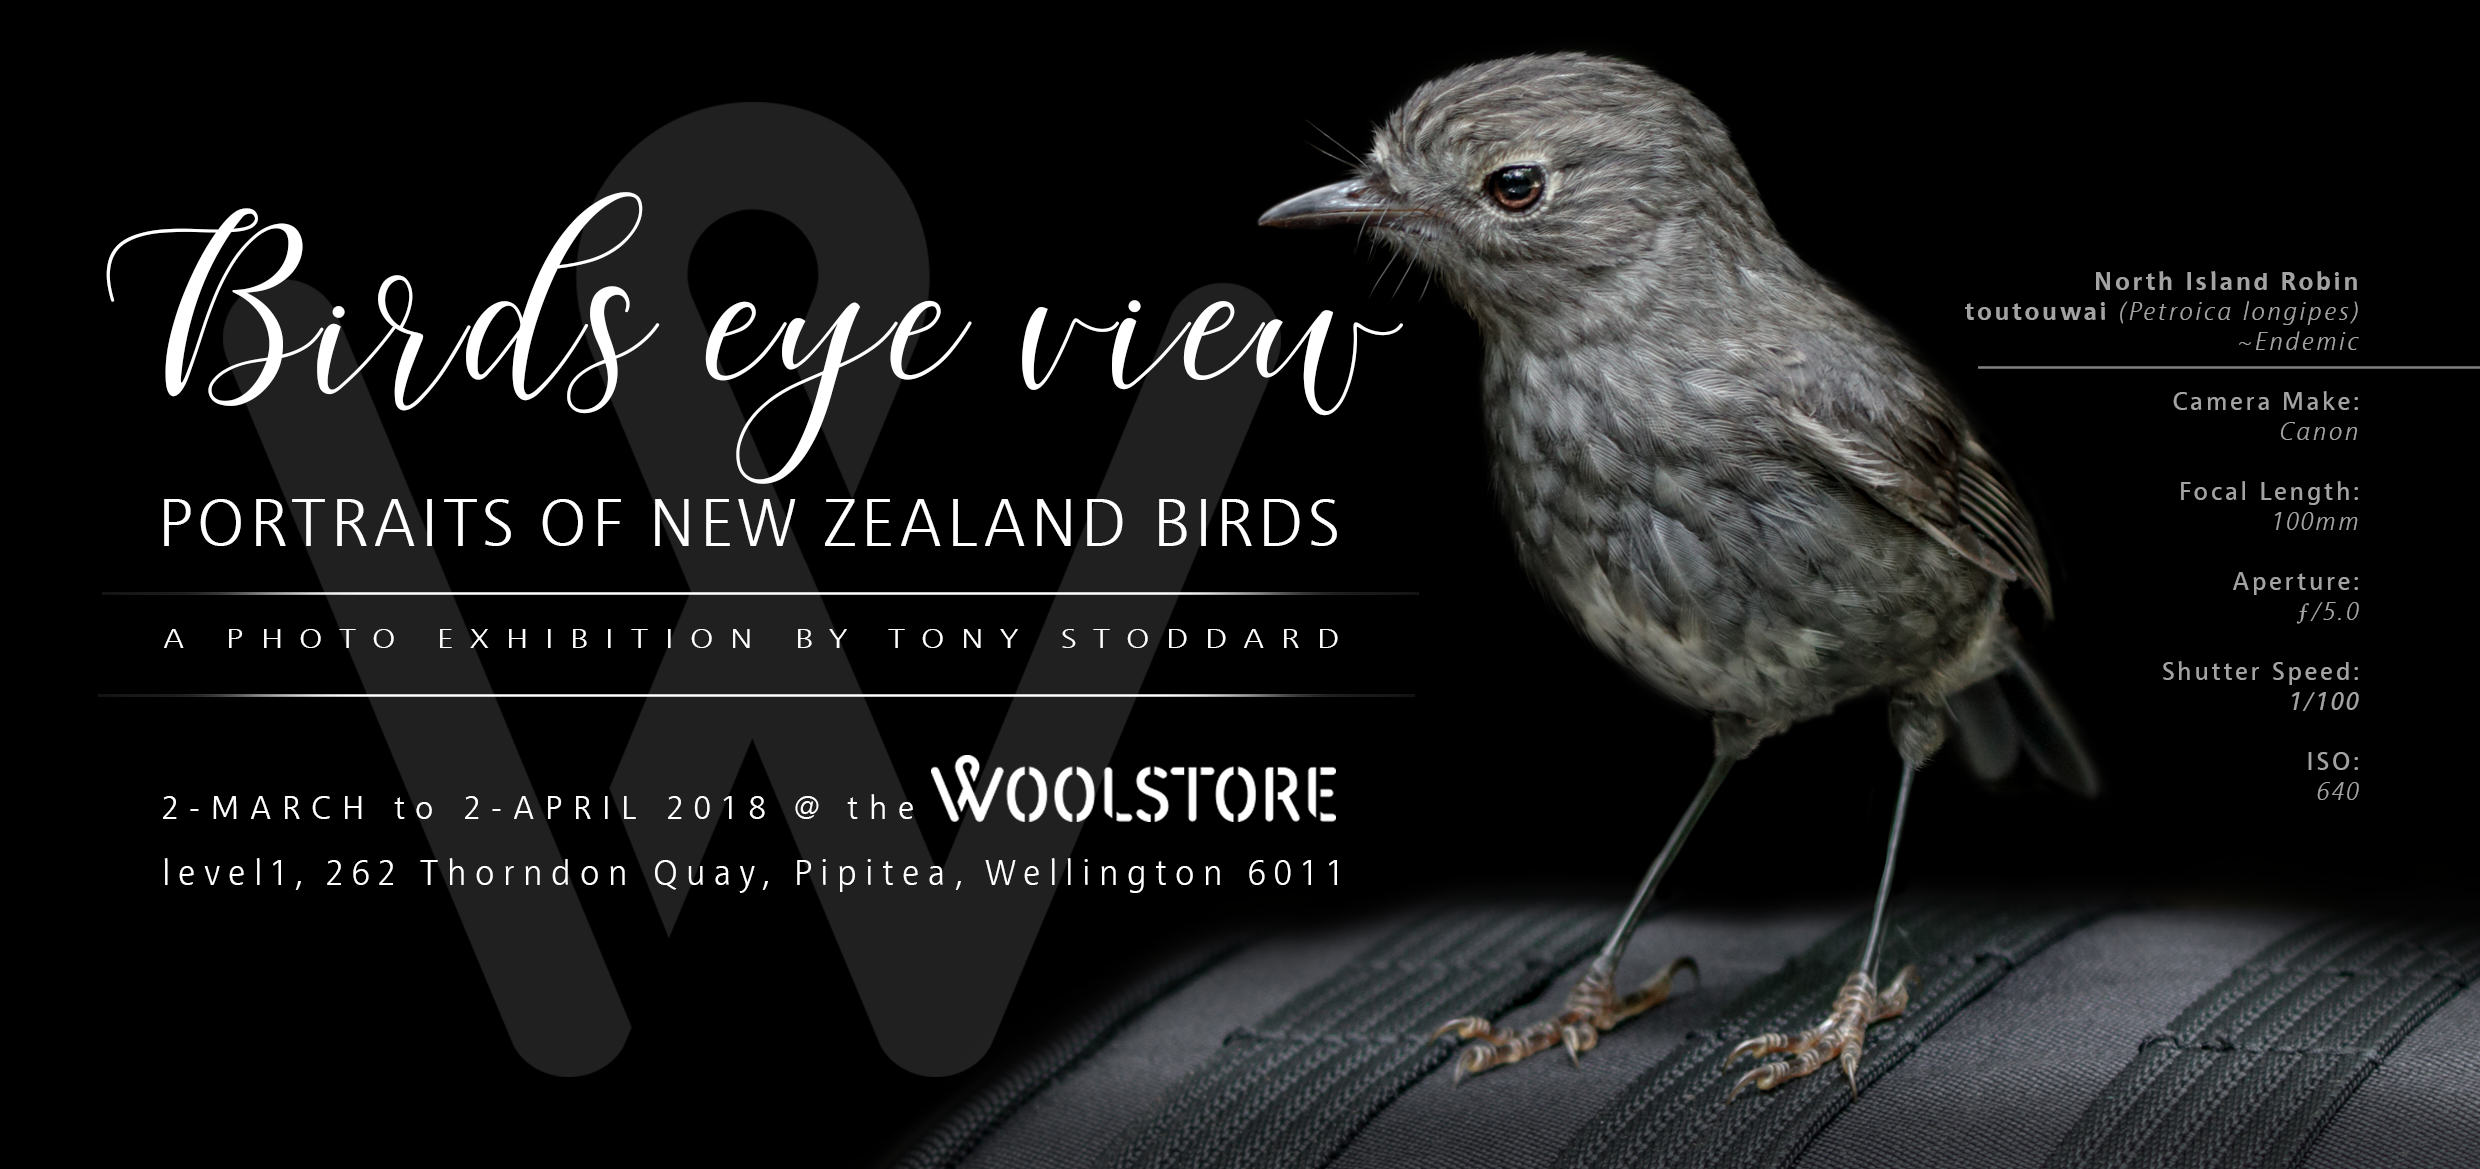 Birds eye view – photo exhibition